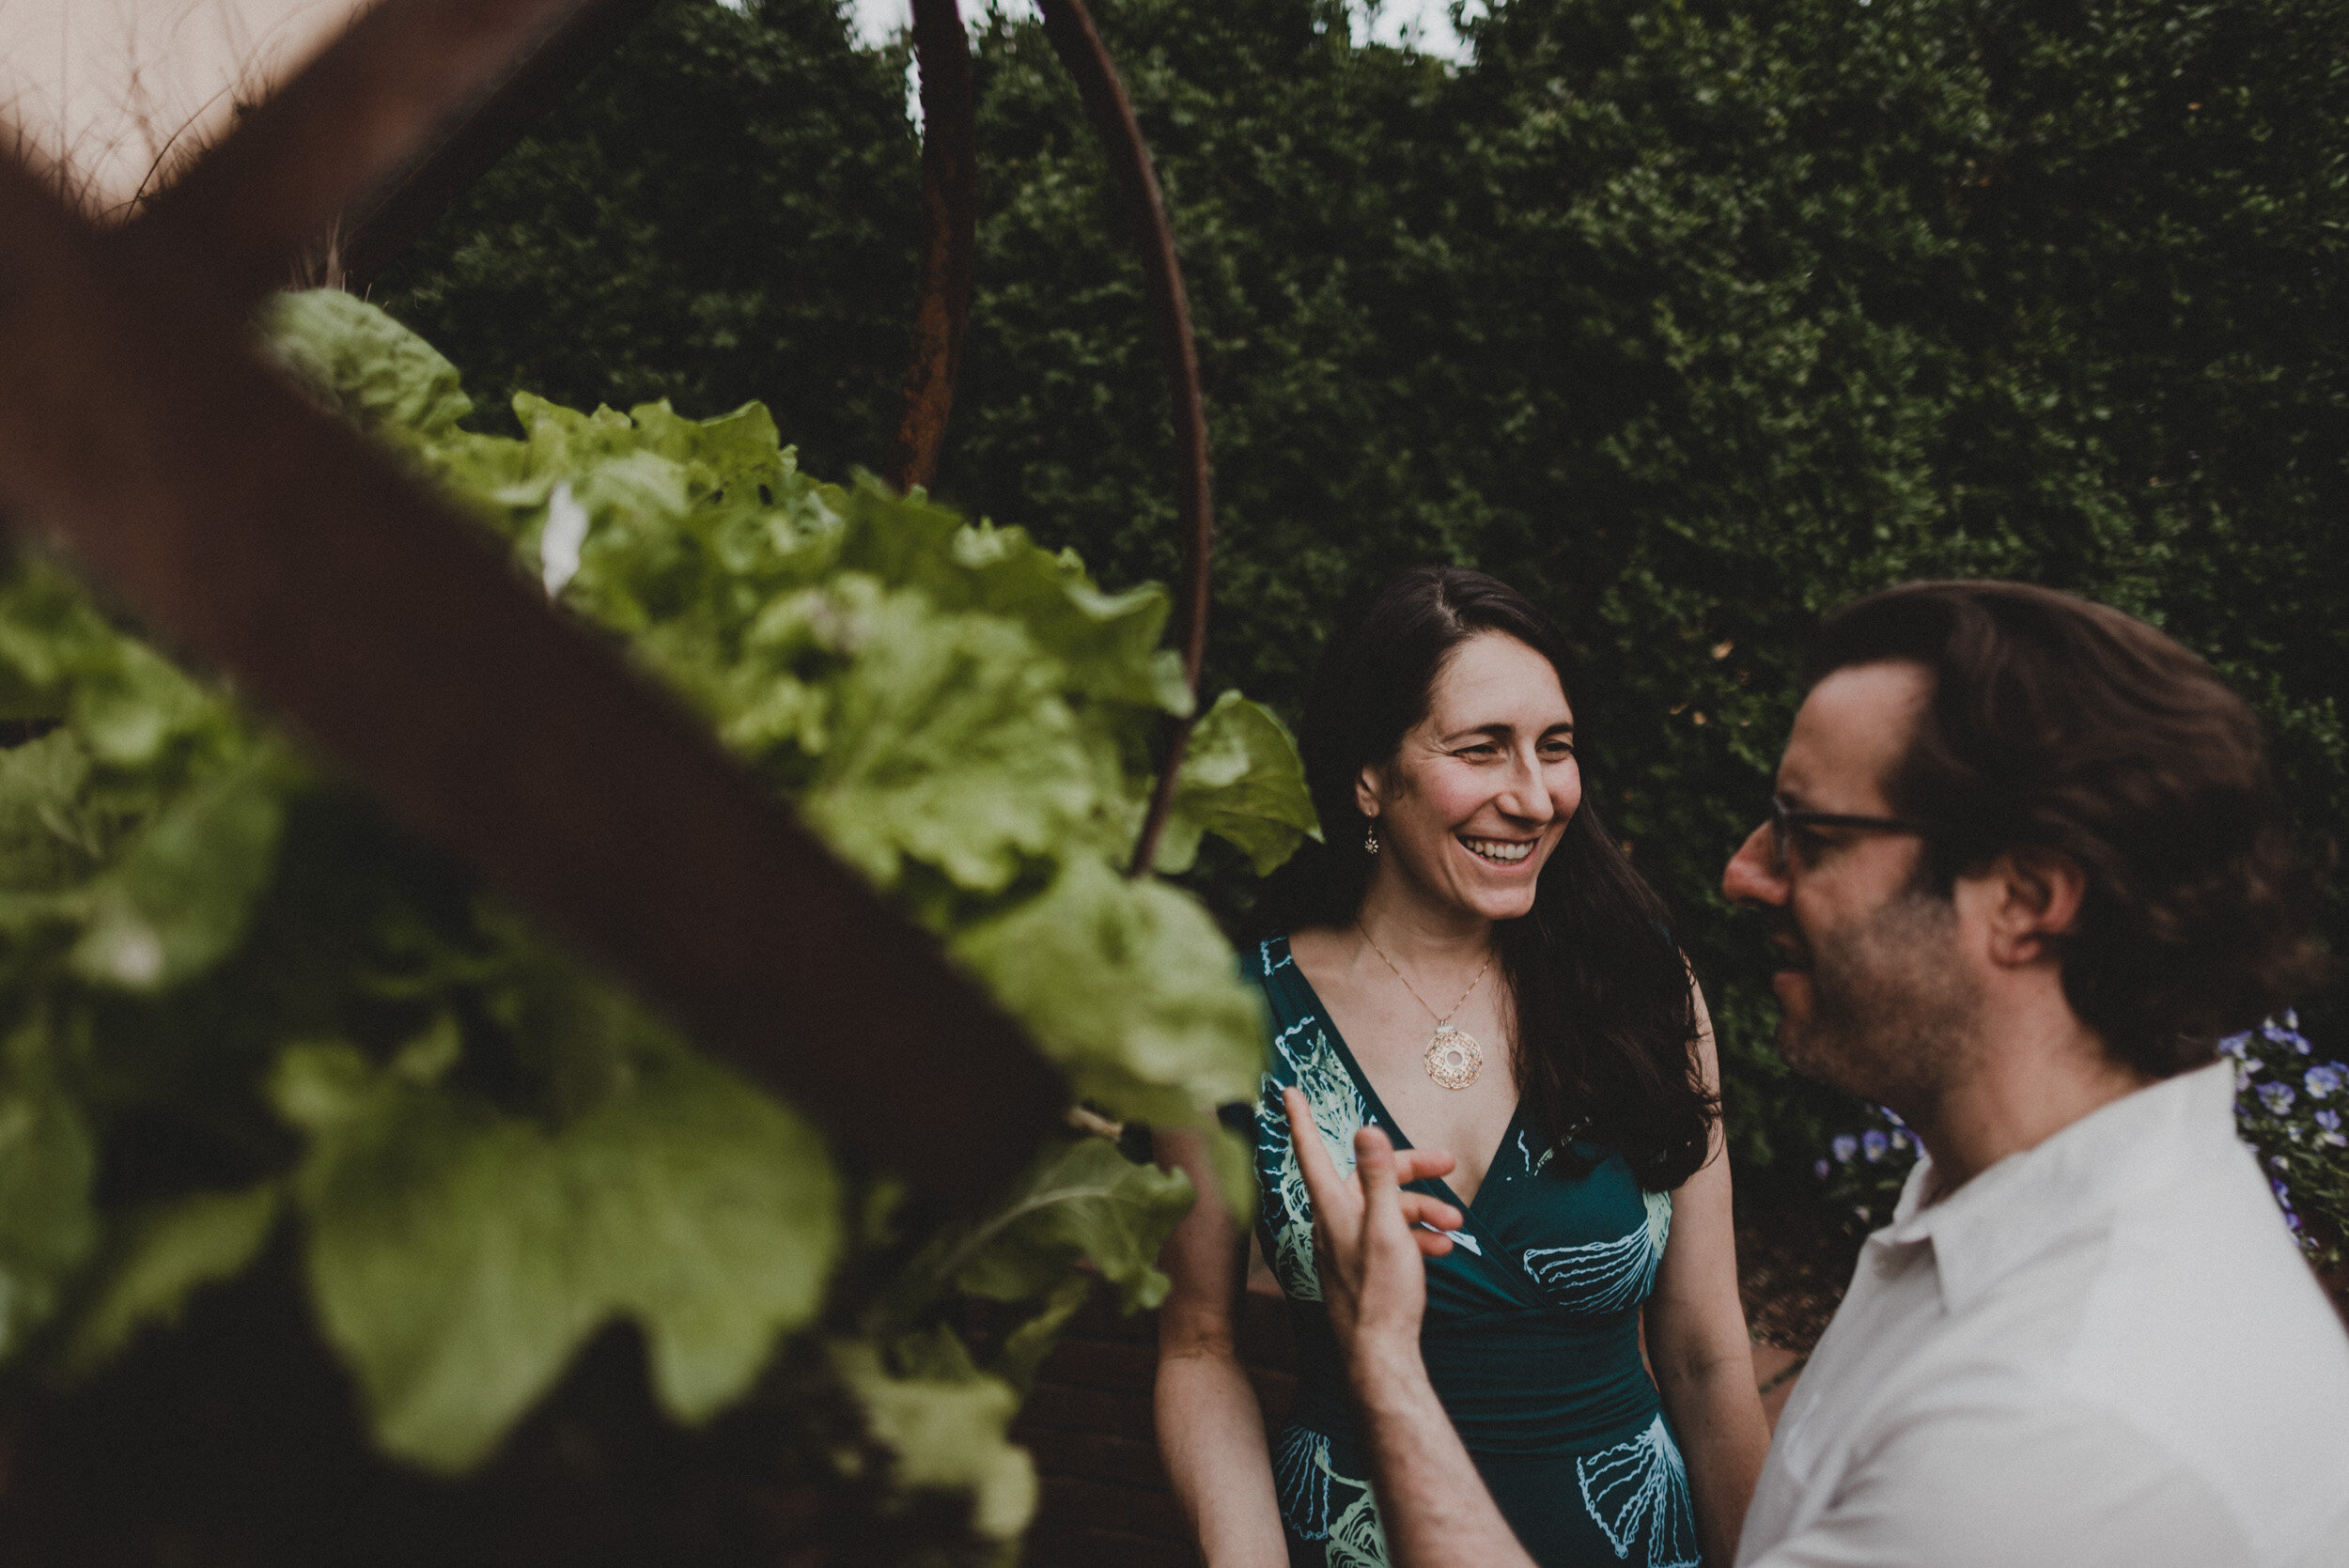 Moongate_Garden_Engagement-37.jpg